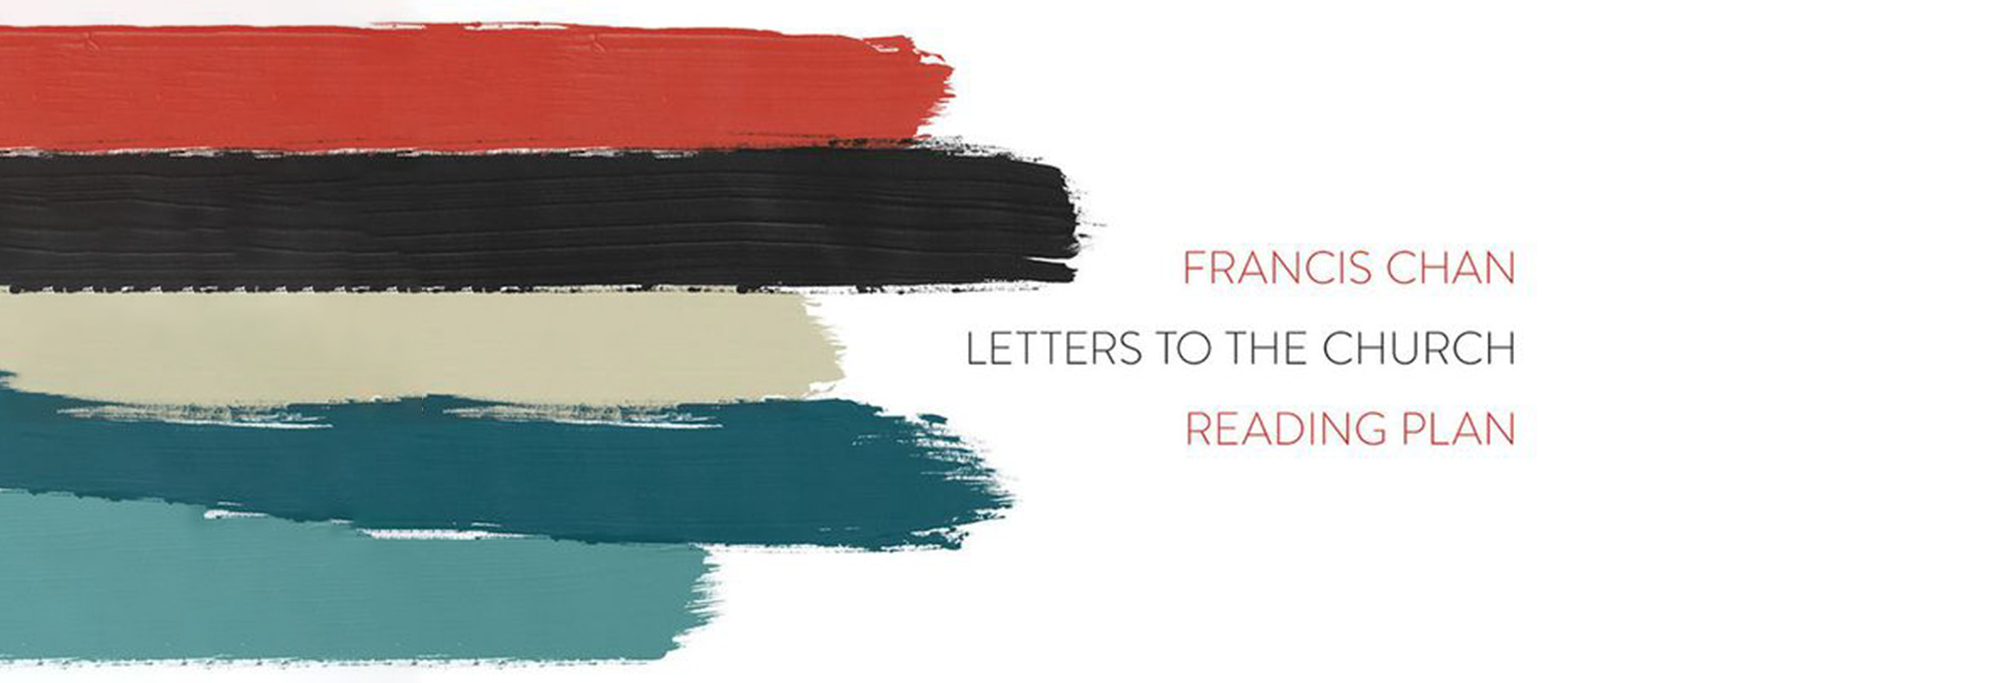 Daily Devotional: Letters To The Church